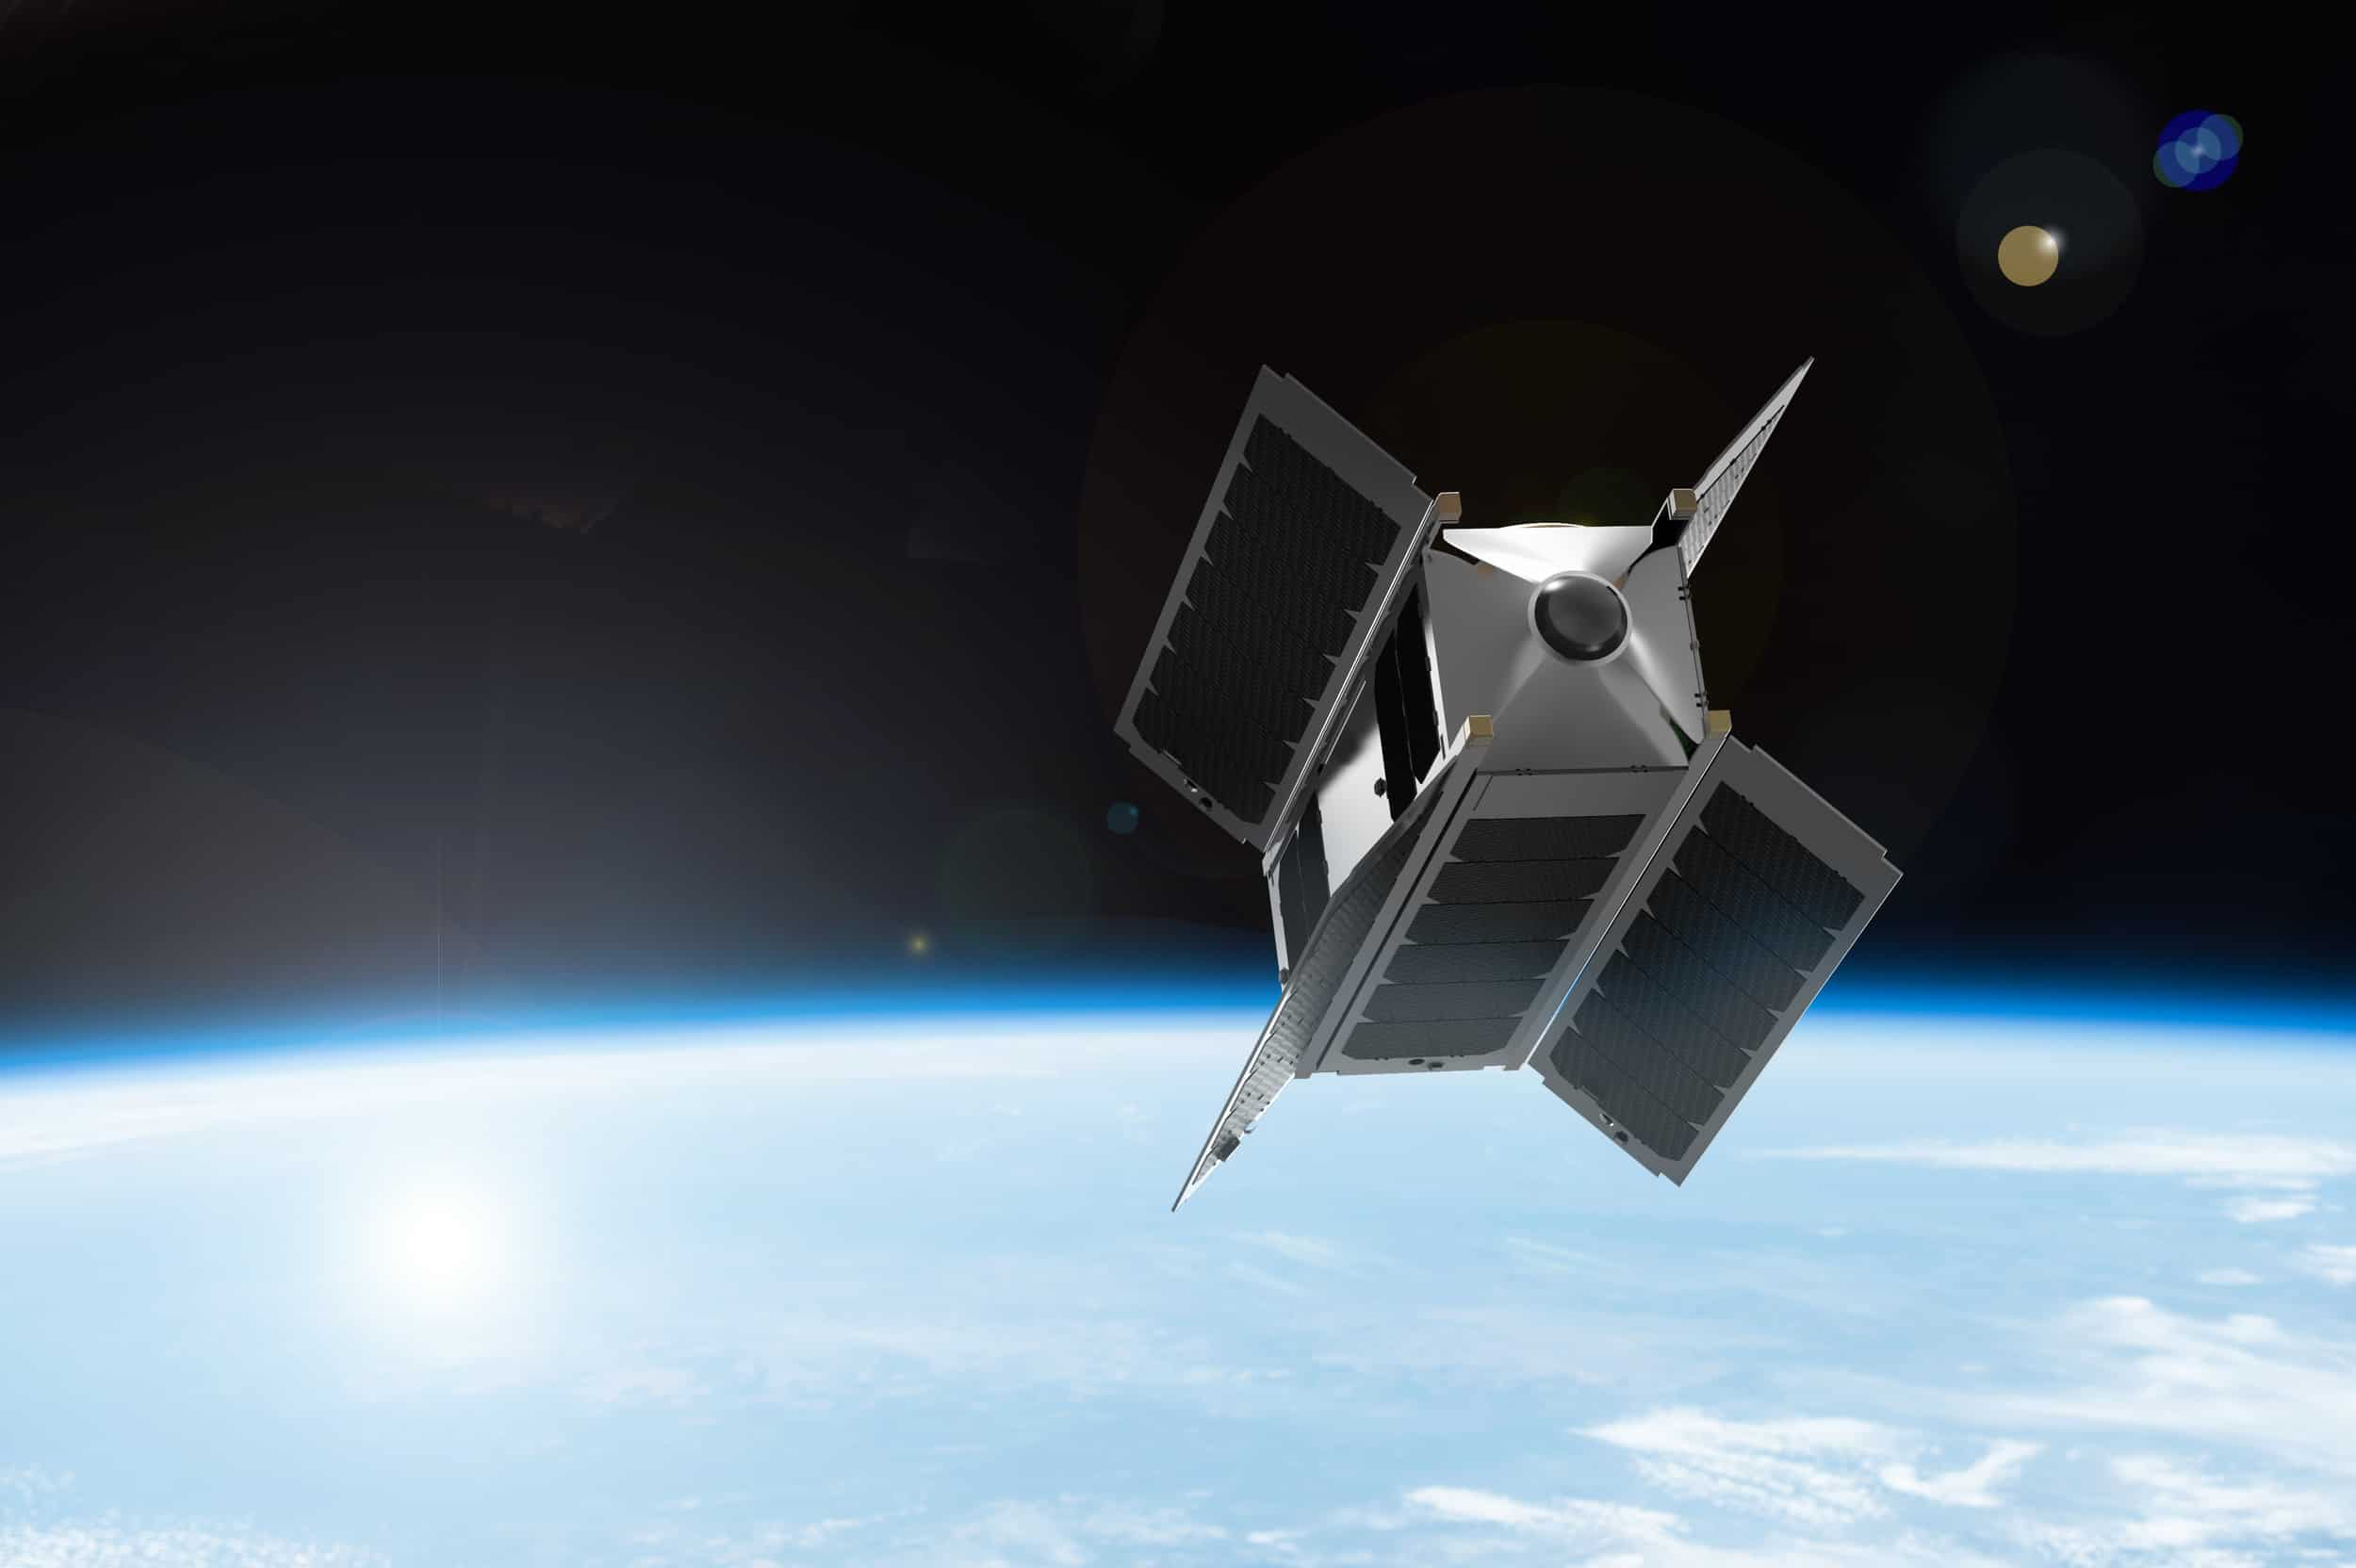 Space VR to launch cameras into space so you can feel what its like to be an astronaut